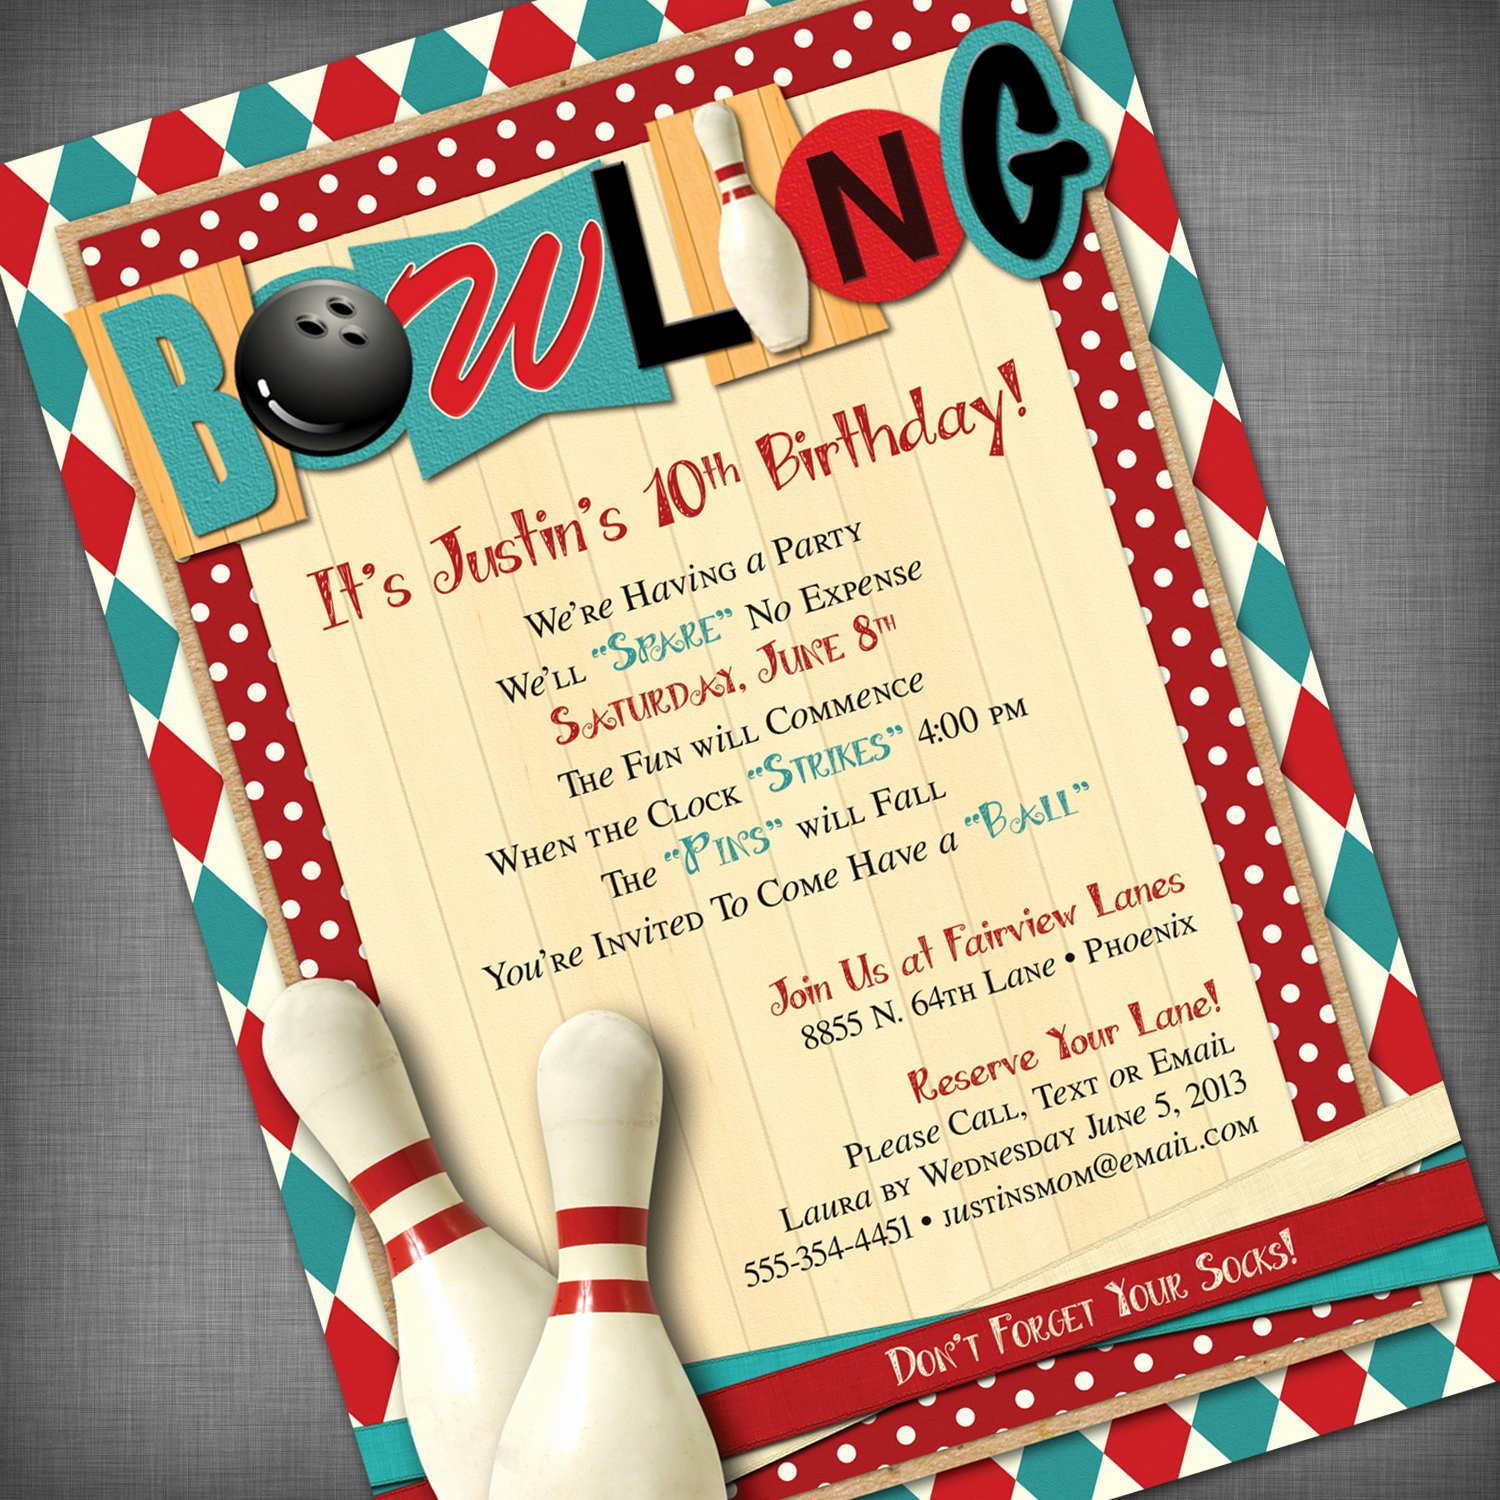 Bowling Party Invitation Template Fresh Bowling Party Customized Printable Invitation